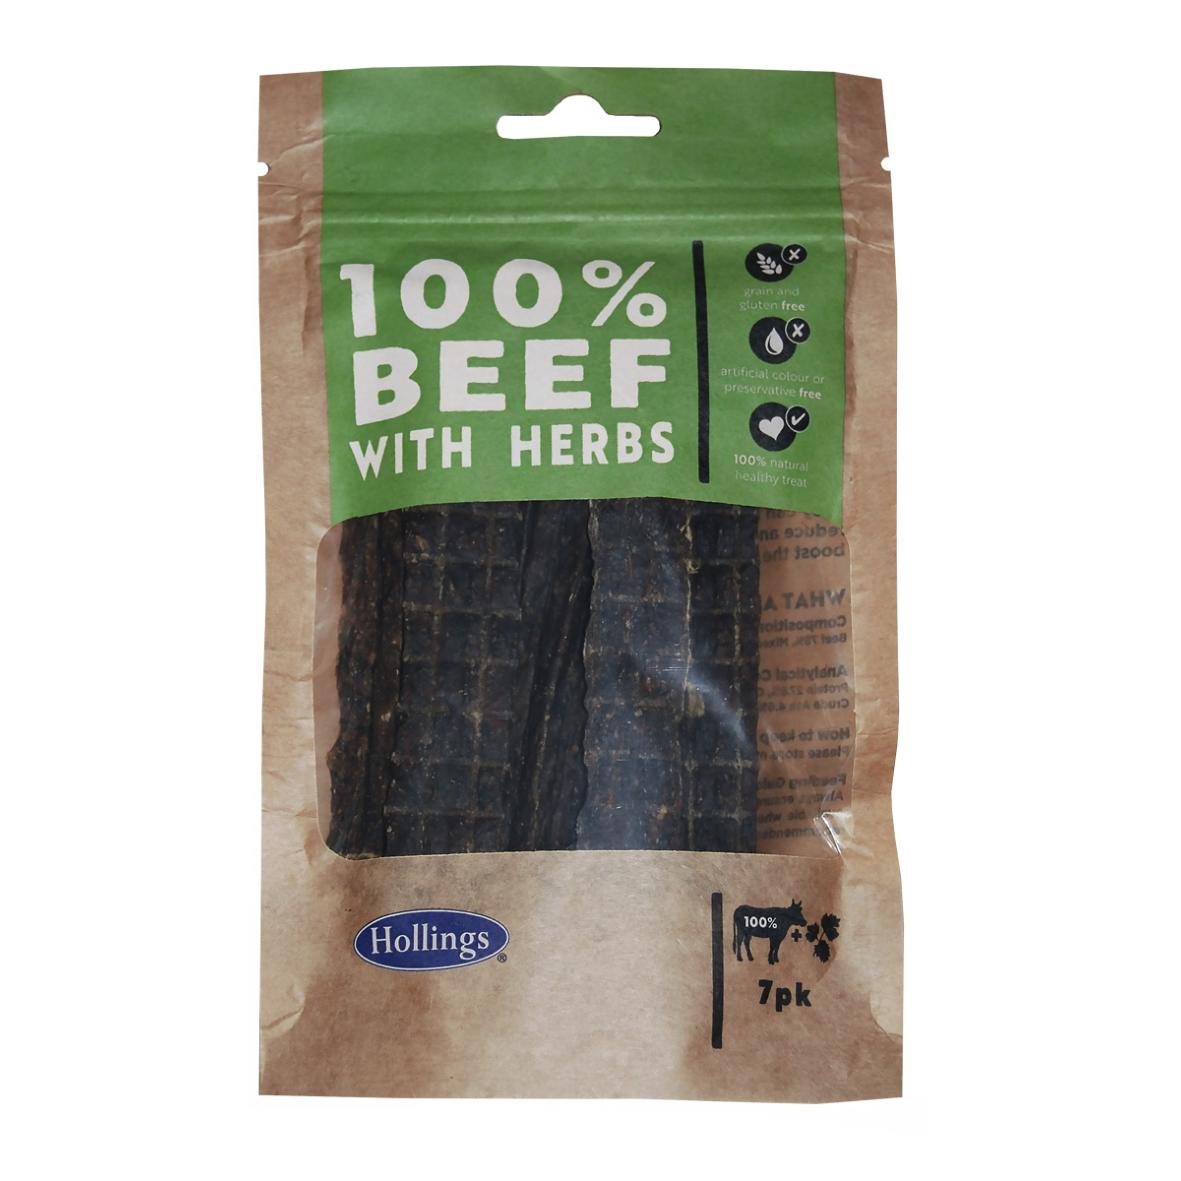 Hollings 100% Beef with Herb Bars 13cm 7pcs